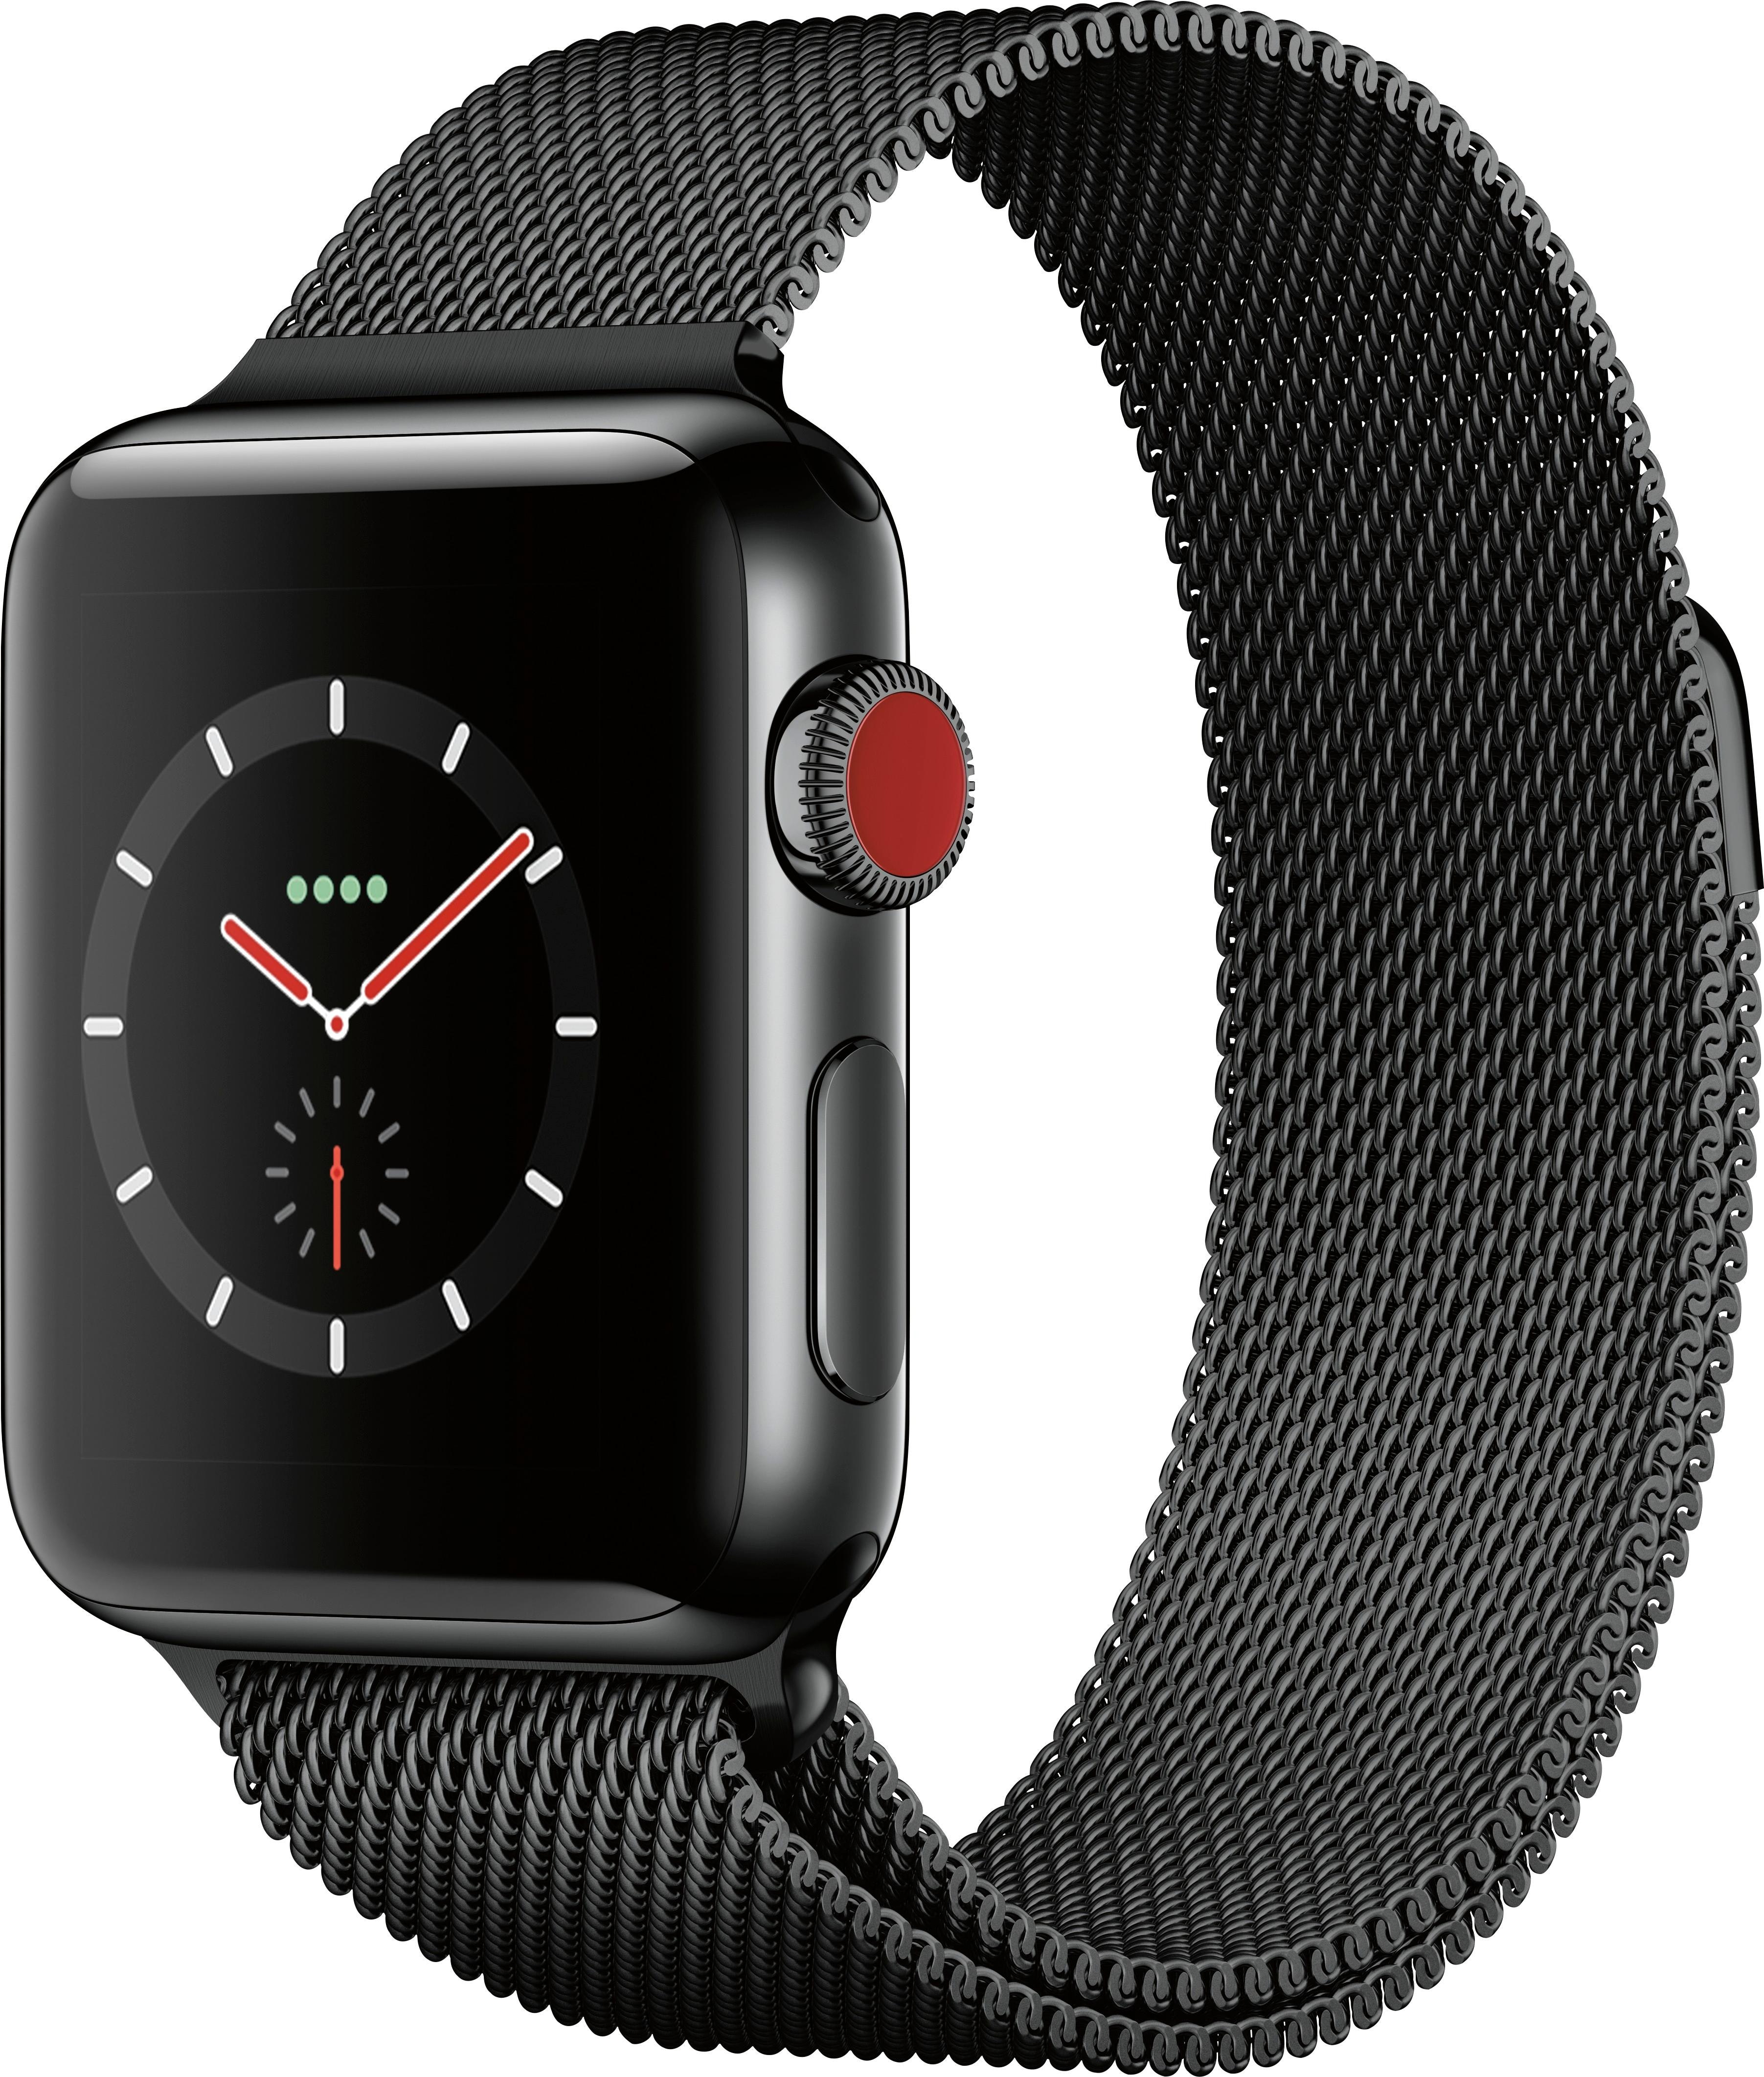 Apple Watch Series 3 GPS + Cellular 38mm Stainless Steel Case with Black Milanese Loop A1860